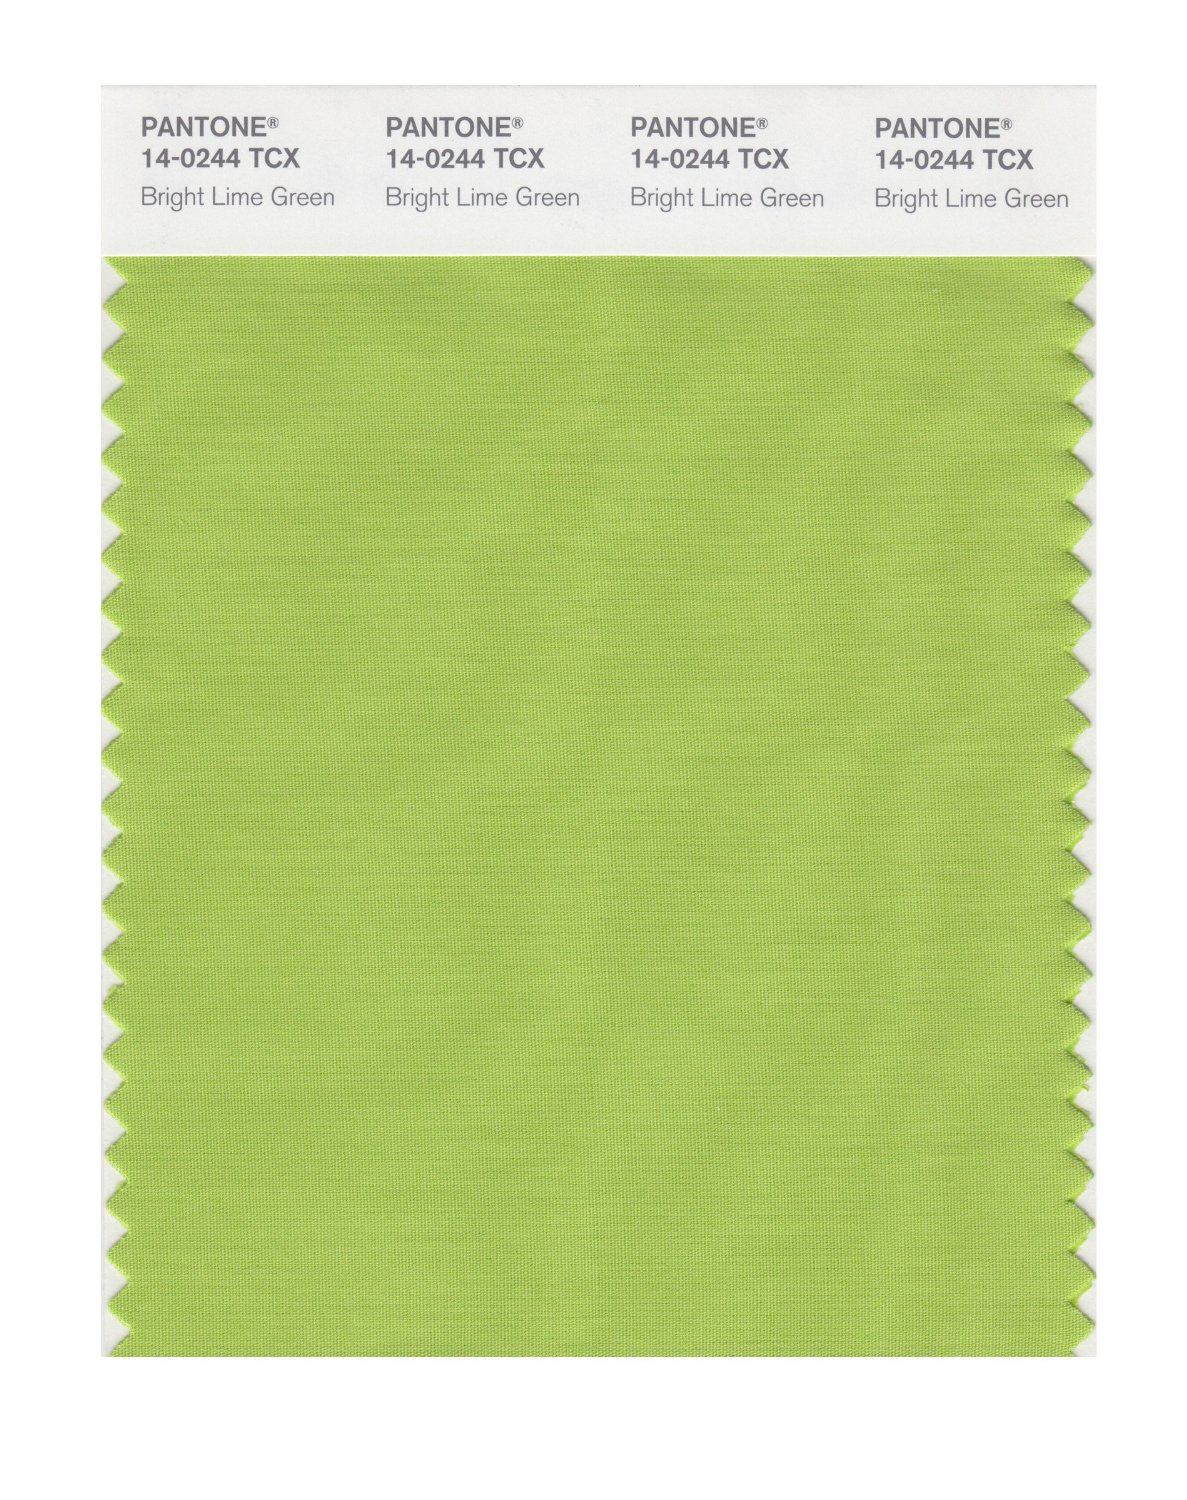 Pantone Smart Swatch 14-0244 Brt Lime Green